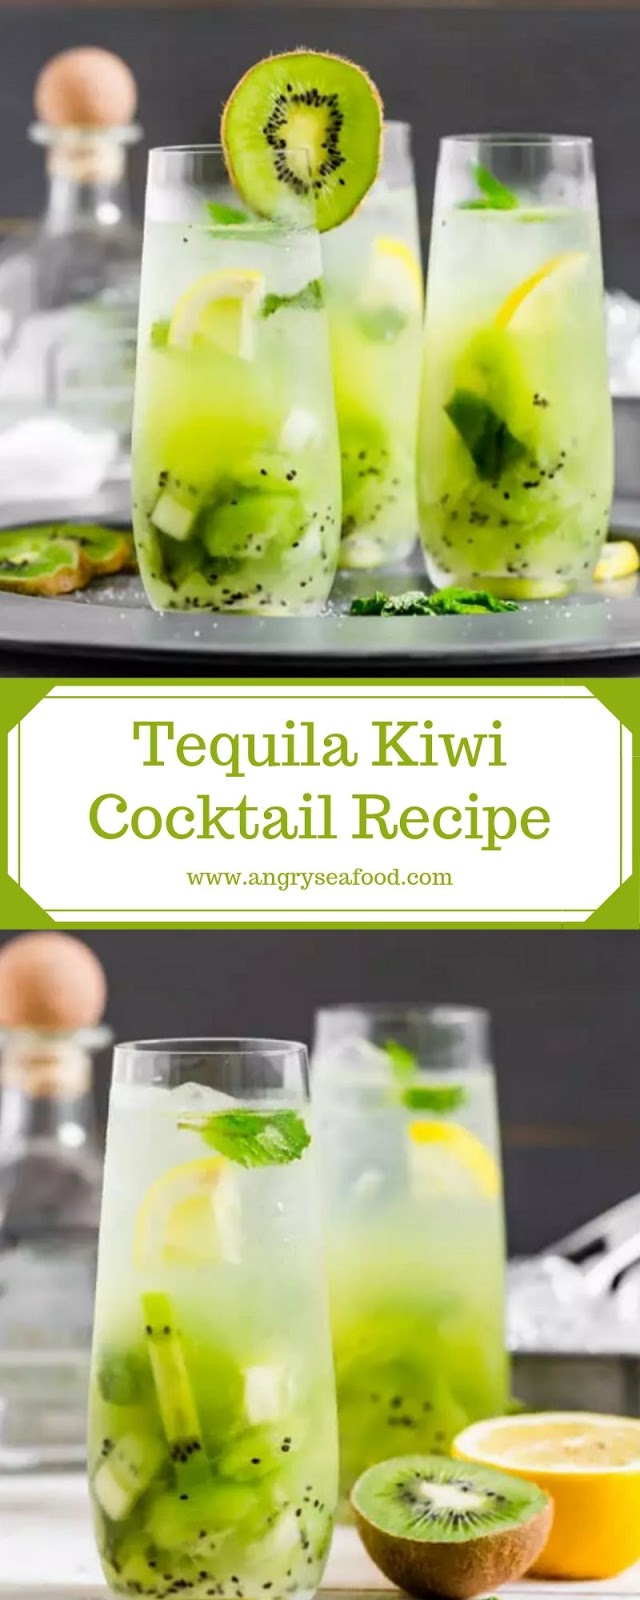 Tequila Kiwi Cocktail Recipe